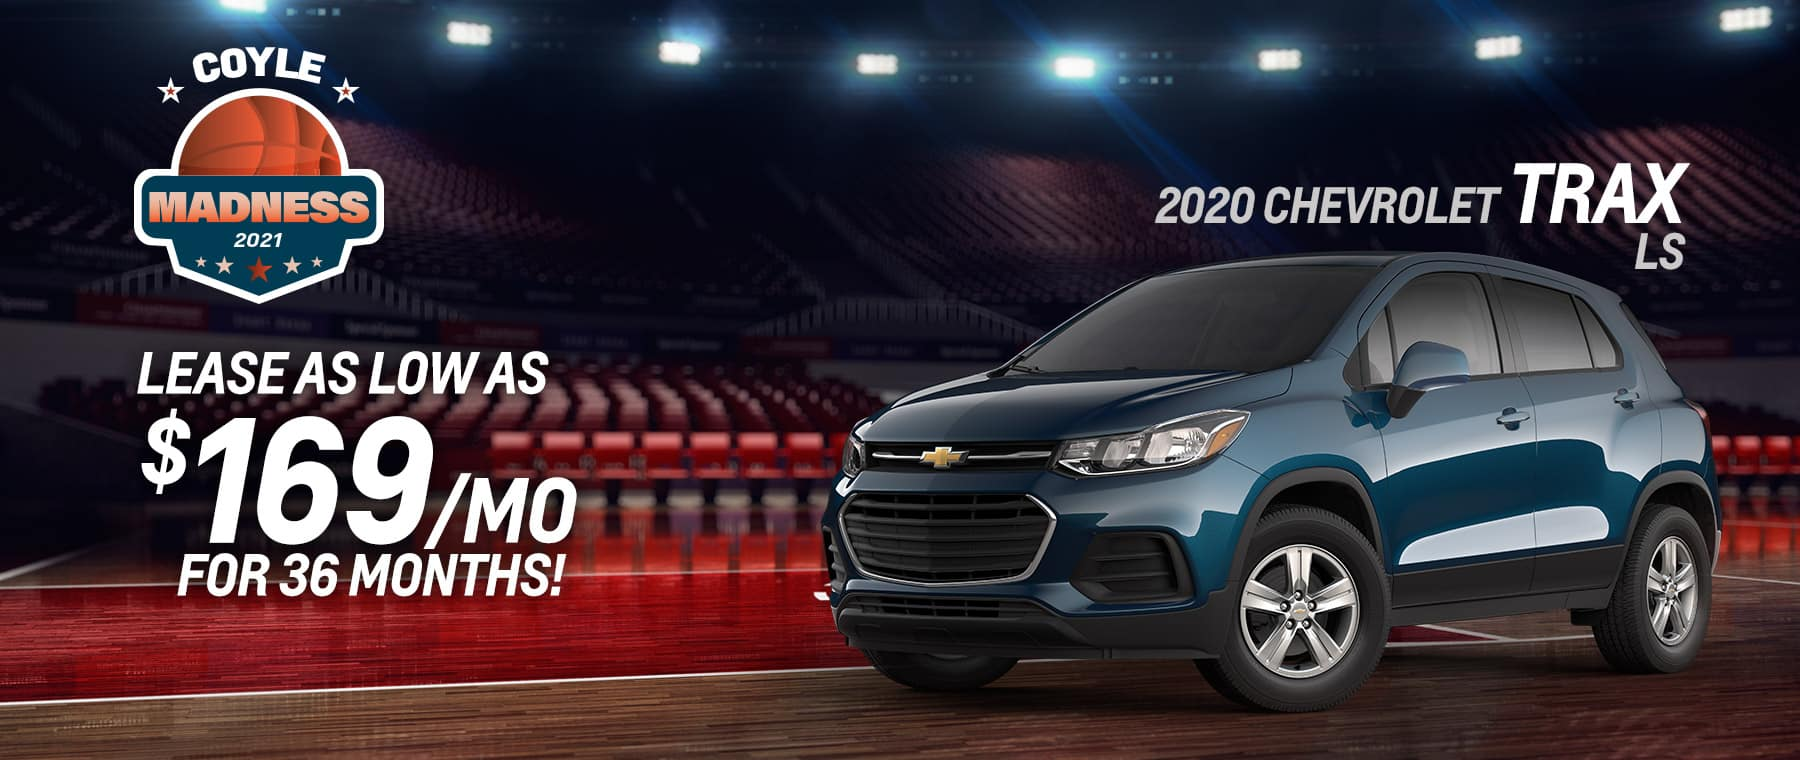 Best lease offer on a new 2020 Chevy Trax near Clarksville IN